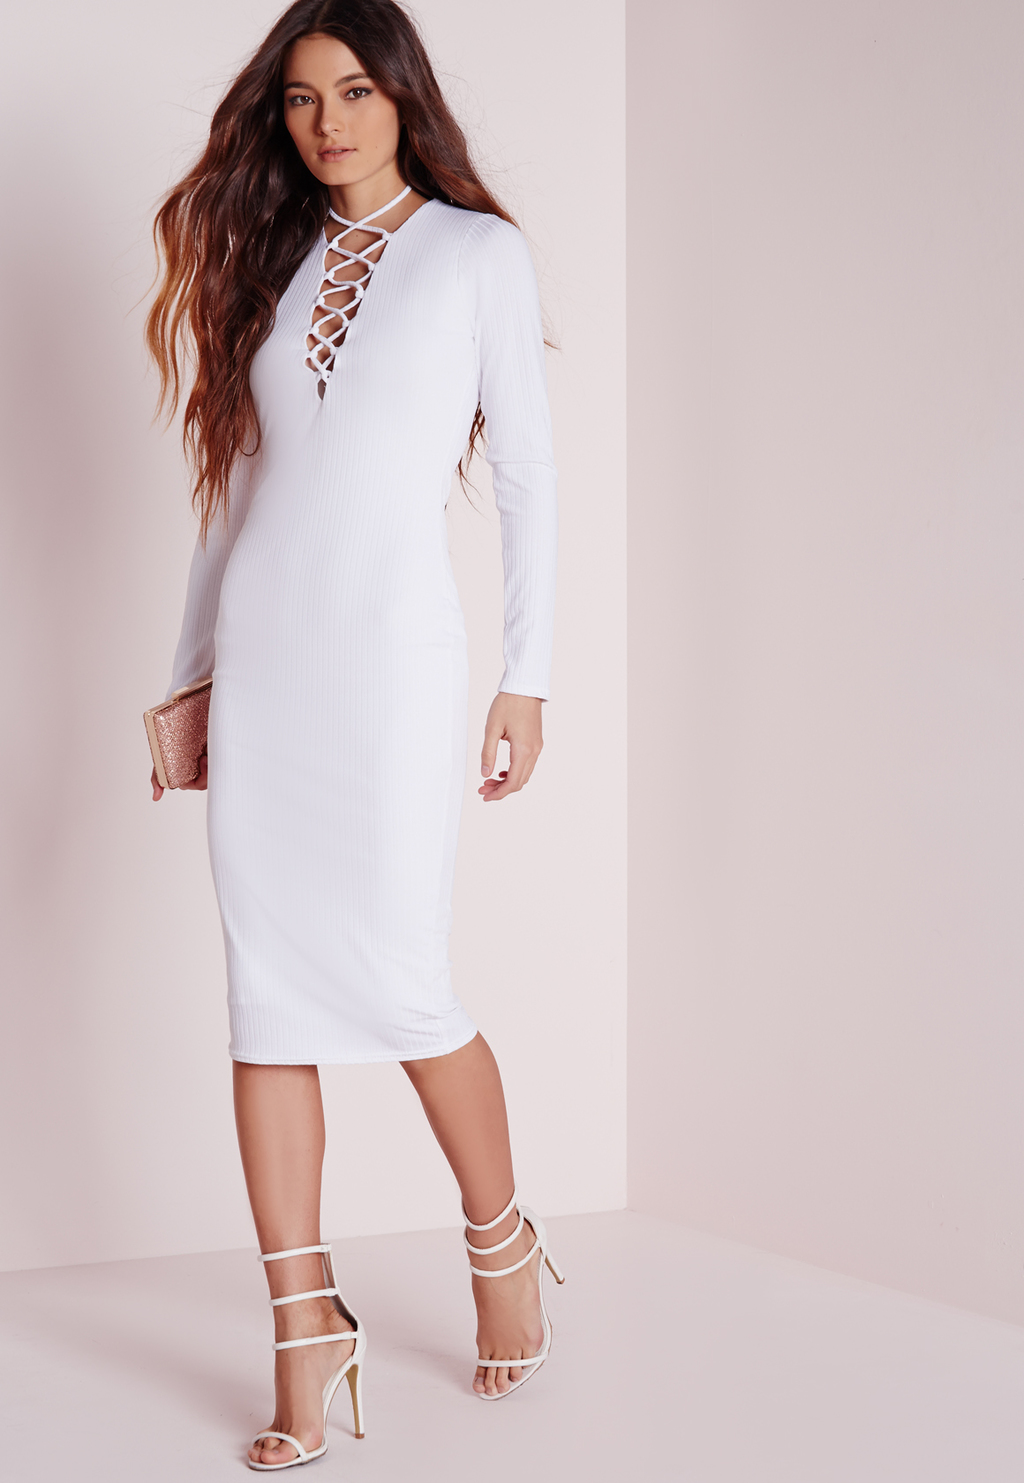 Ribbed Long Sleeve Lace Up Midi Dress White, White - style: shift; length: below the knee; neckline: v-neck; pattern: plain; predominant colour: white; occasions: evening, occasion; fit: body skimming; fibres: polyester/polyamide - stretch; sleeve length: long sleeve; sleeve style: standard; pattern type: fabric; texture group: other - stretchy; season: a/w 2015